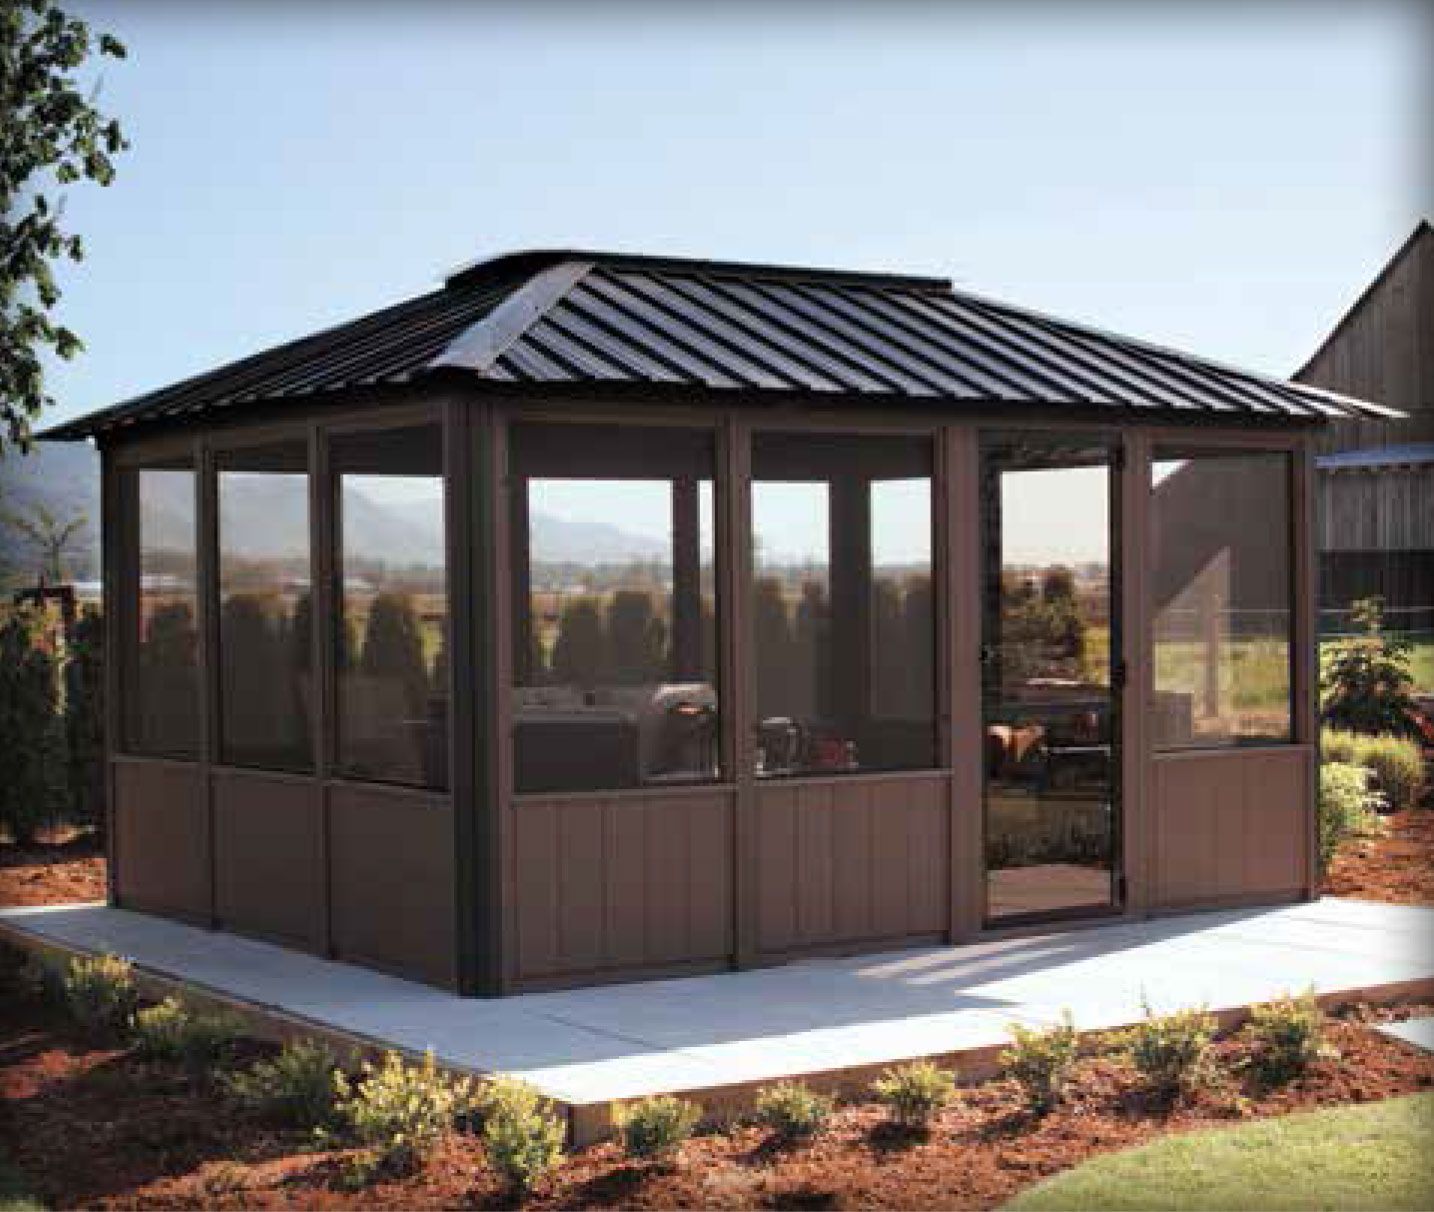 Adding Beauty To Your Garden With An Arbor Enclosed Gazebo